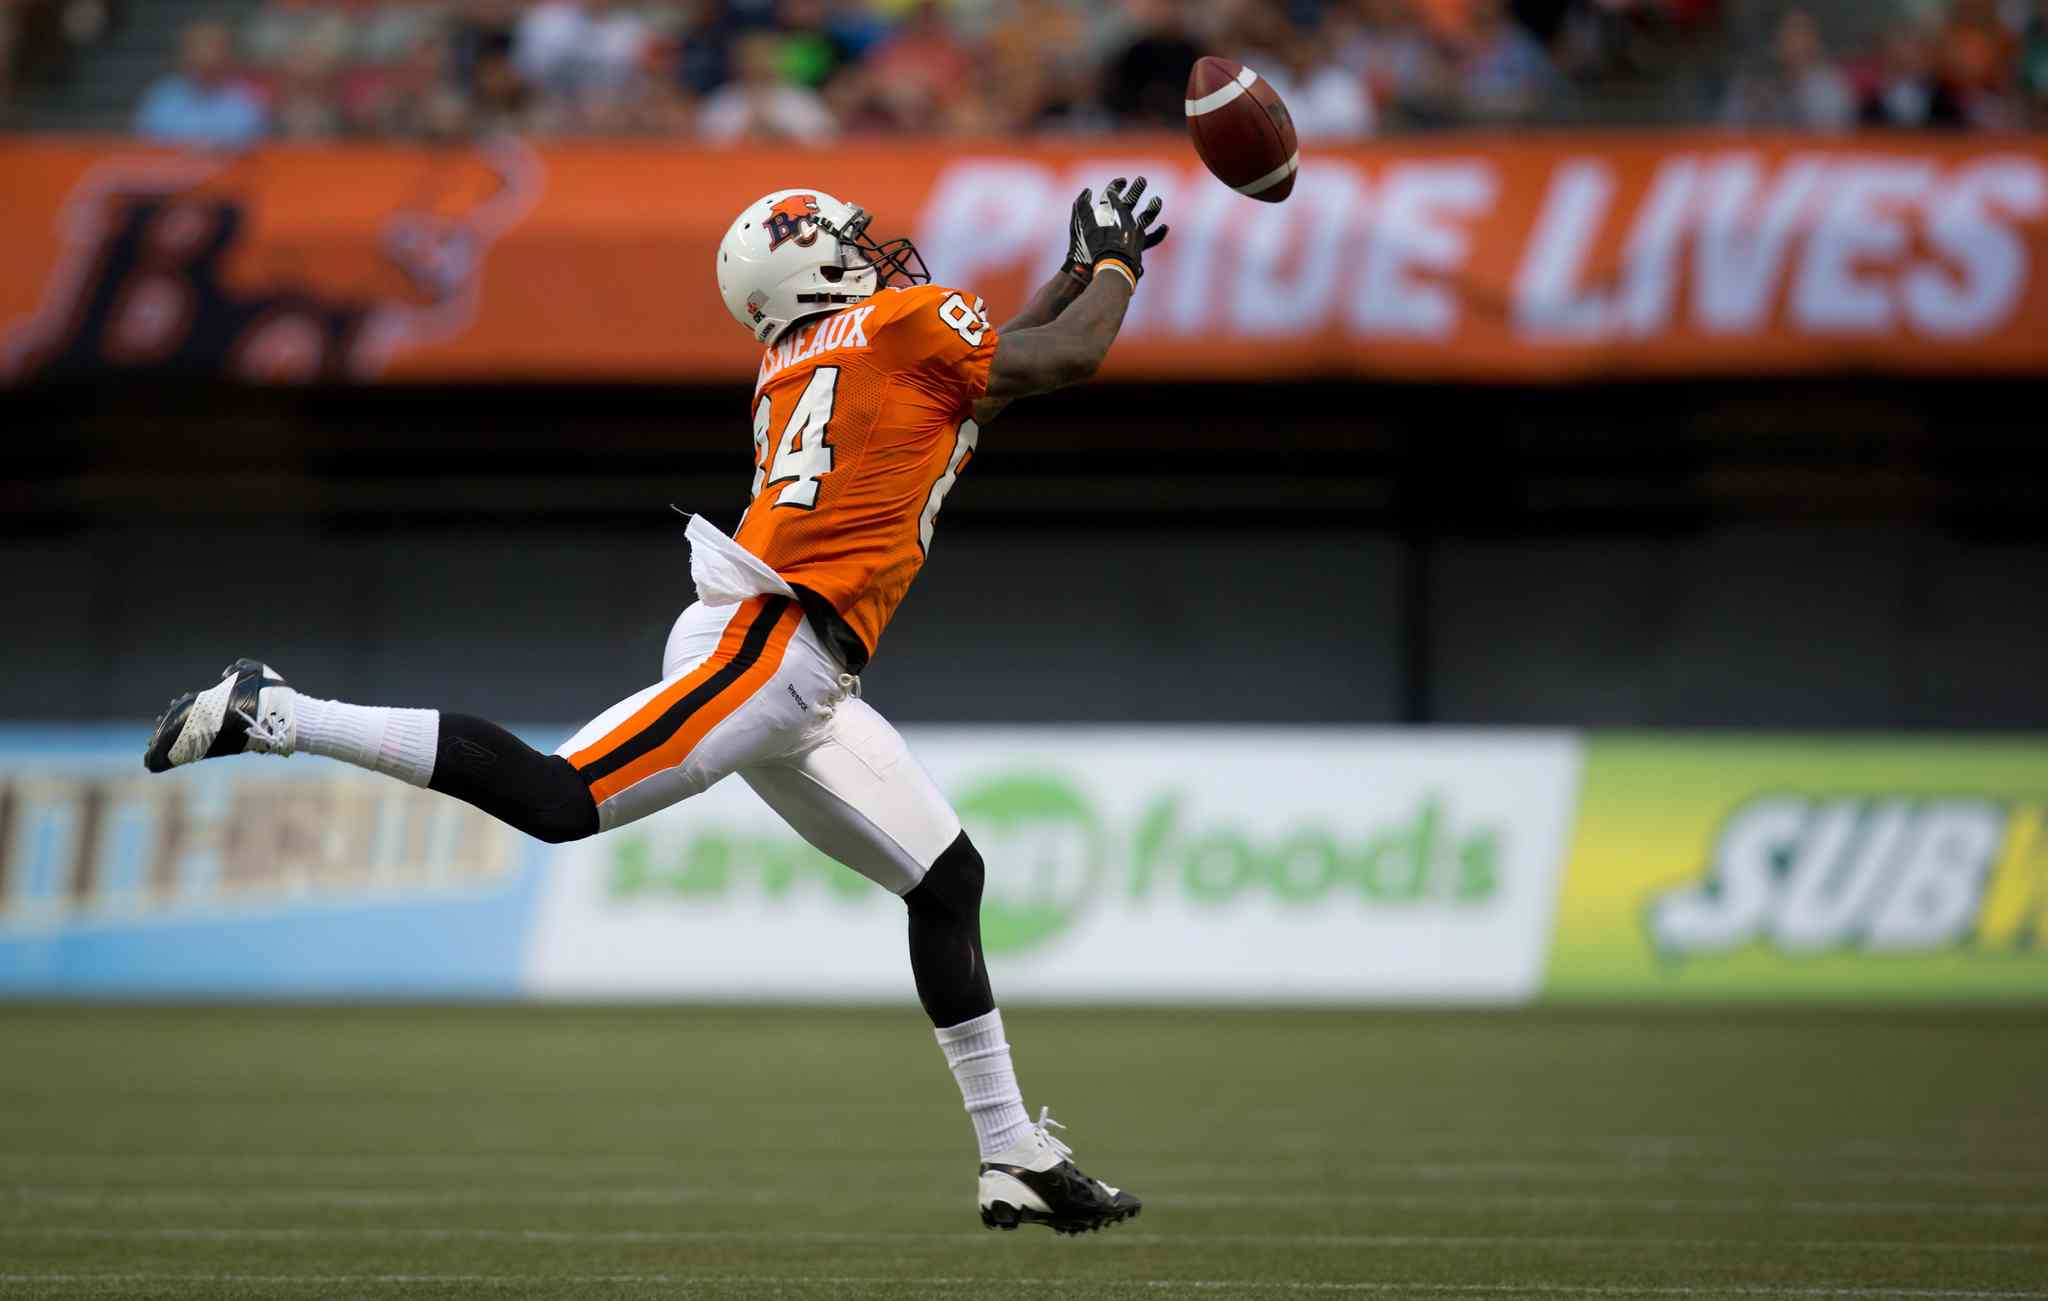 B.C. Lions' Emmanuel Arceneaux reaches but fails to make the reception during the first half of Friday's game.